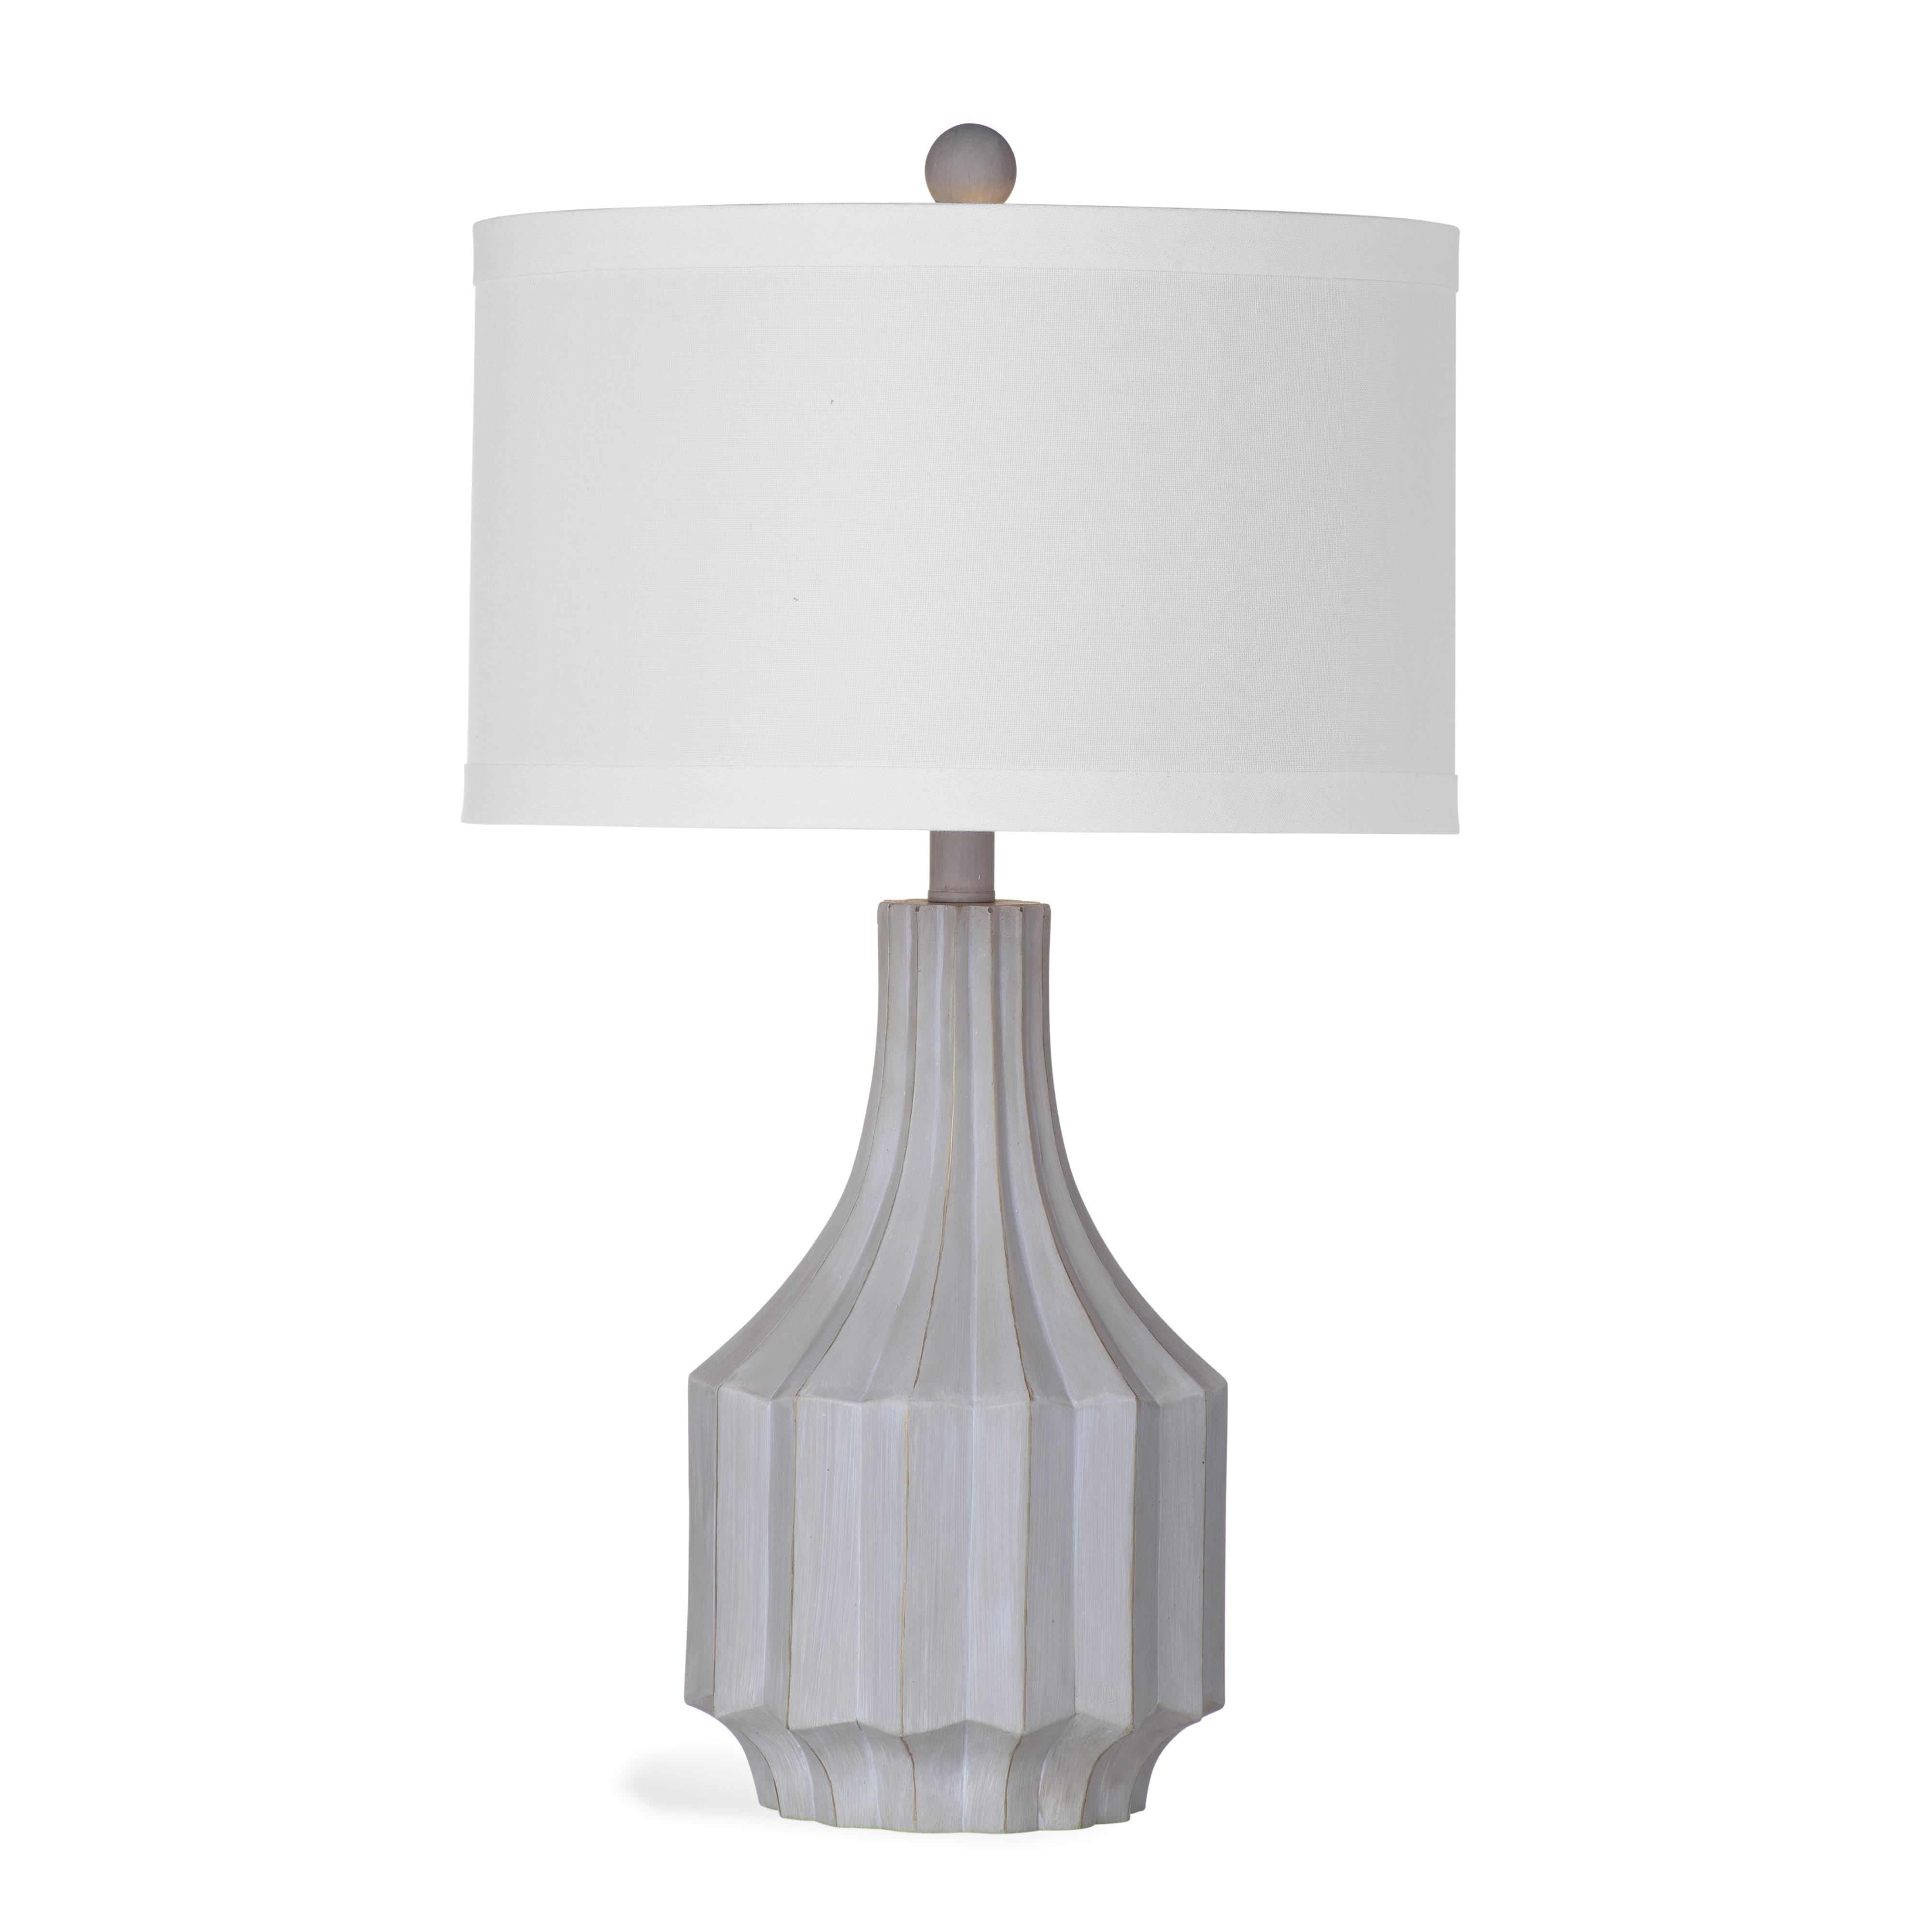 Belgian Luxe Cowan Table Lamp by Bassett Mirror at Alison Craig Home Furnishings